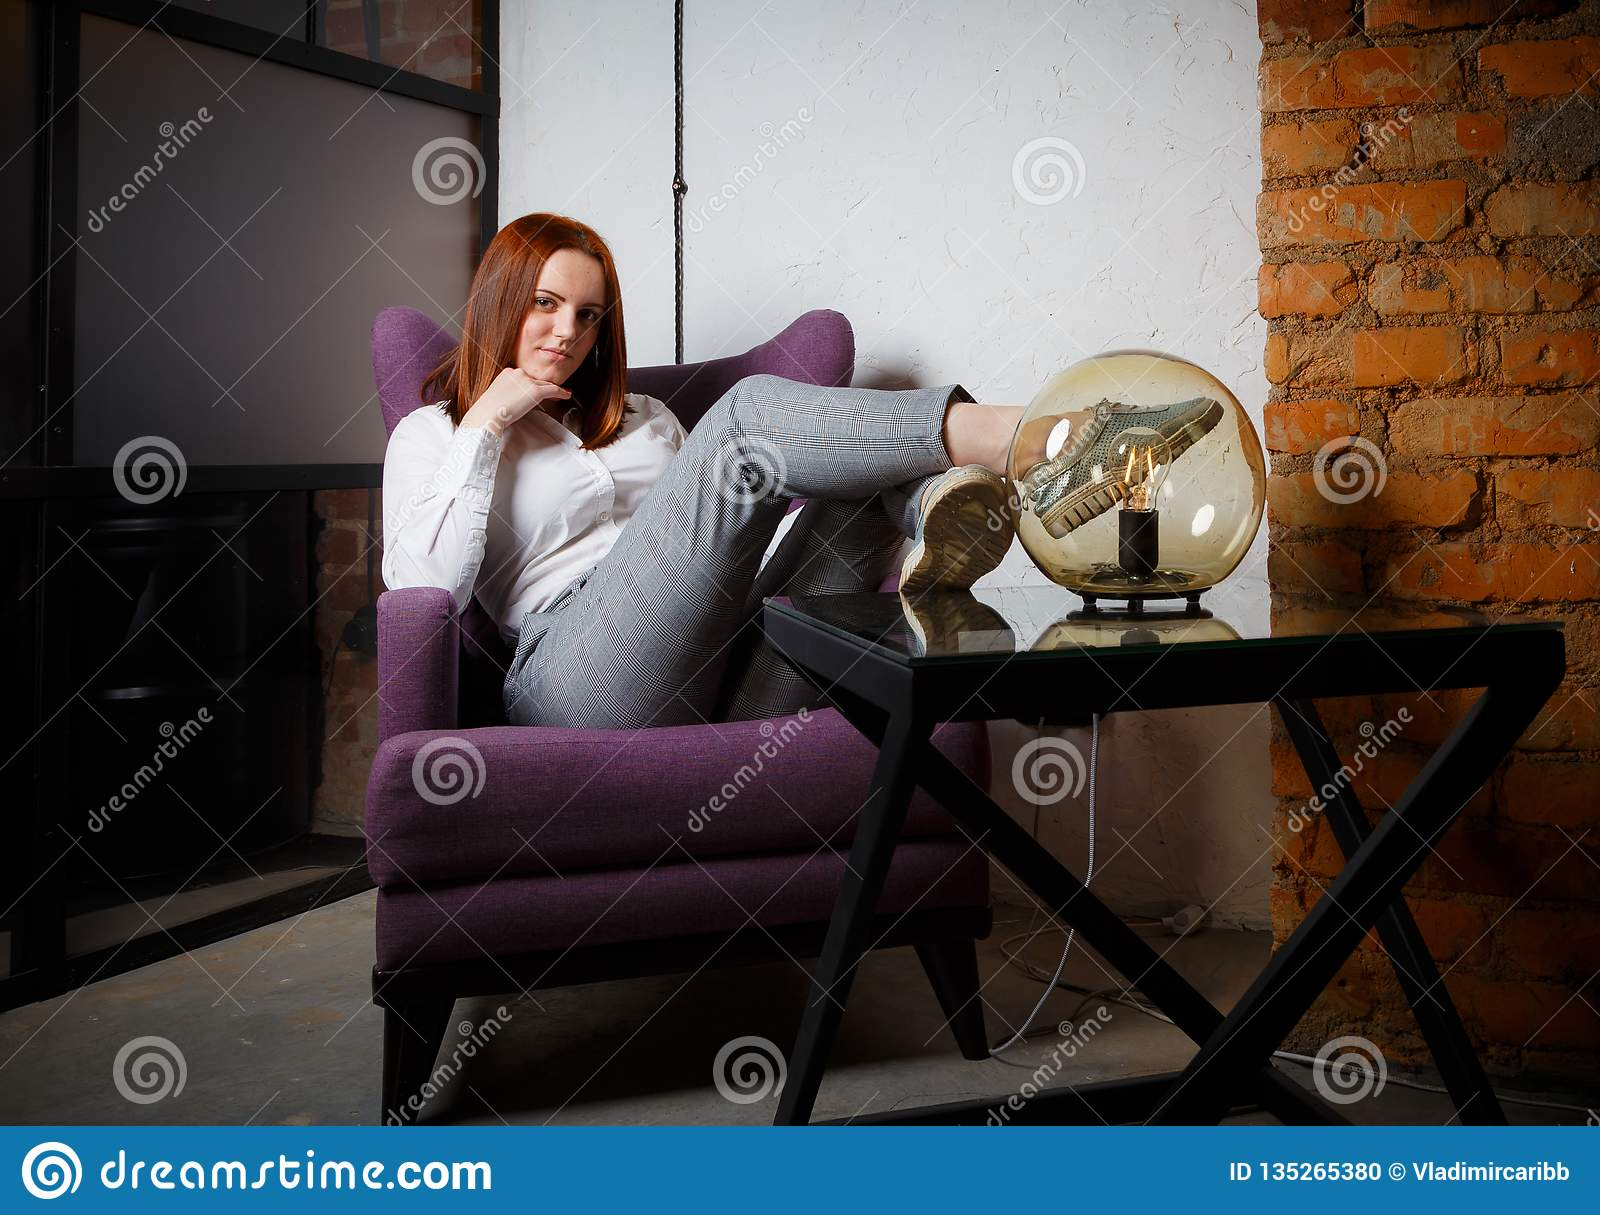 Beautiful refined girl with long red hair sitting relaxed in leather brown chair. Bright warm colors, lifestyle and loft interior